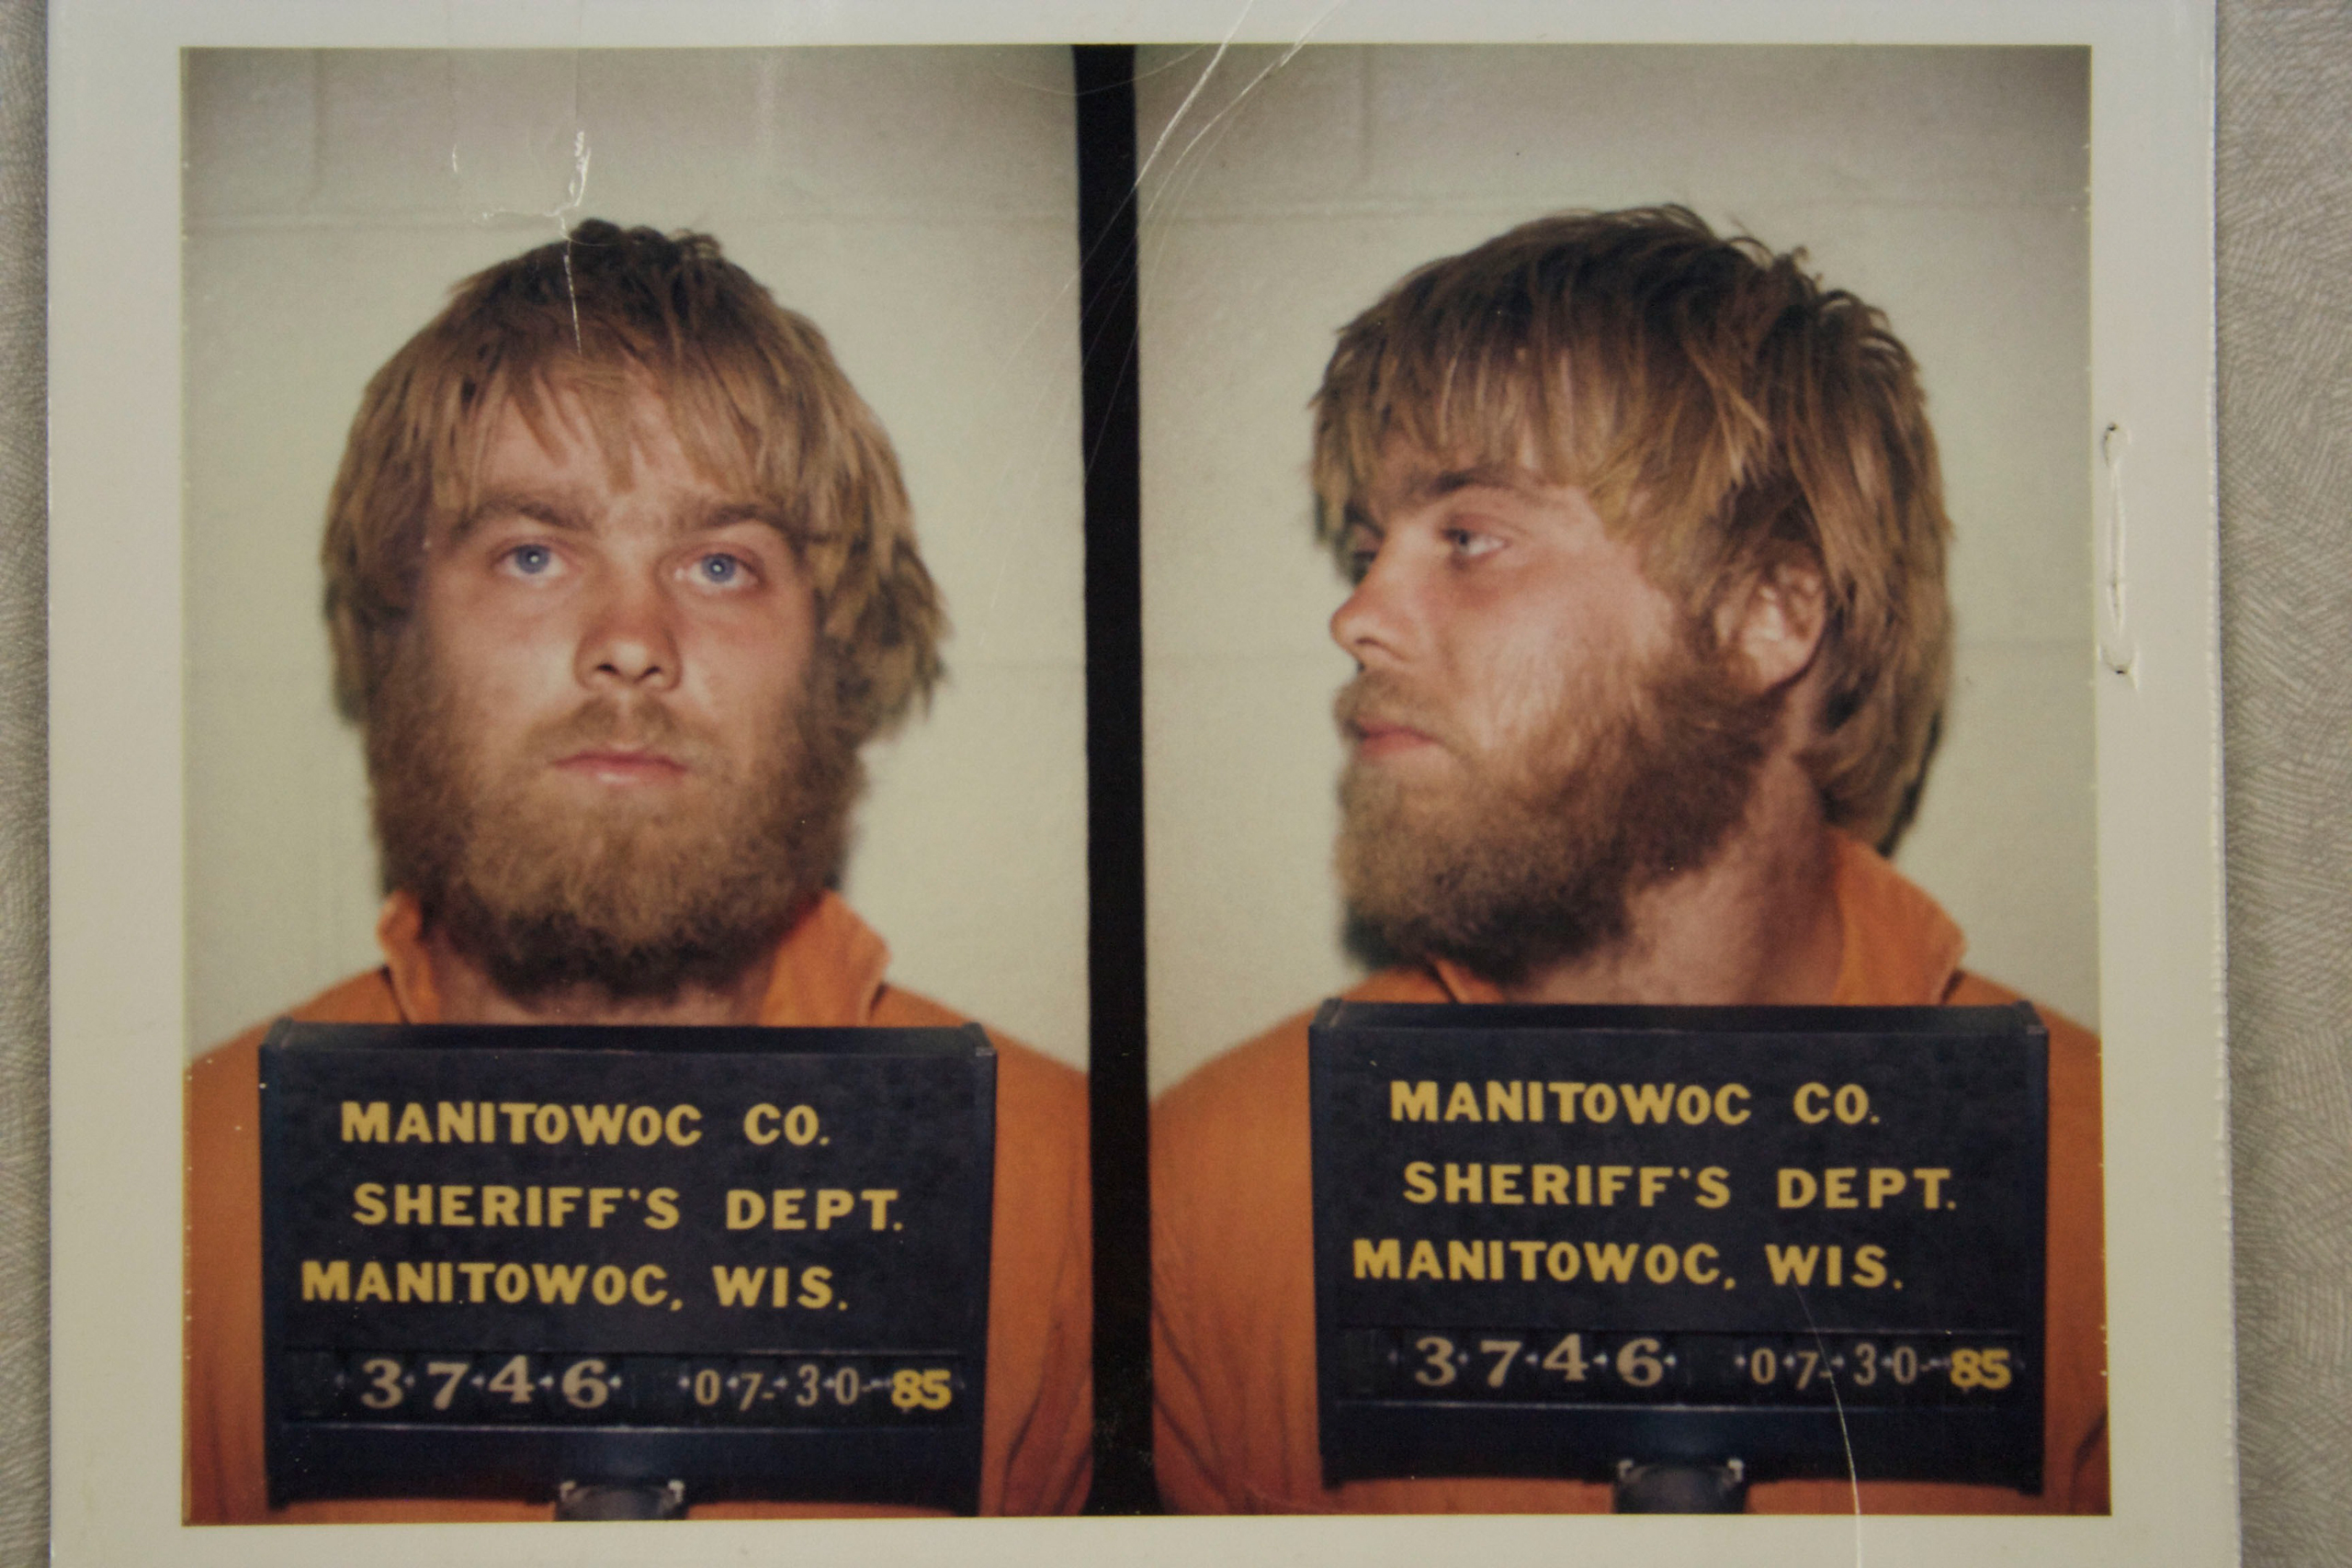 Steven Avery has already served time in prison for a crime he did not commit; a new Netflix series suggests the same thing is happening again